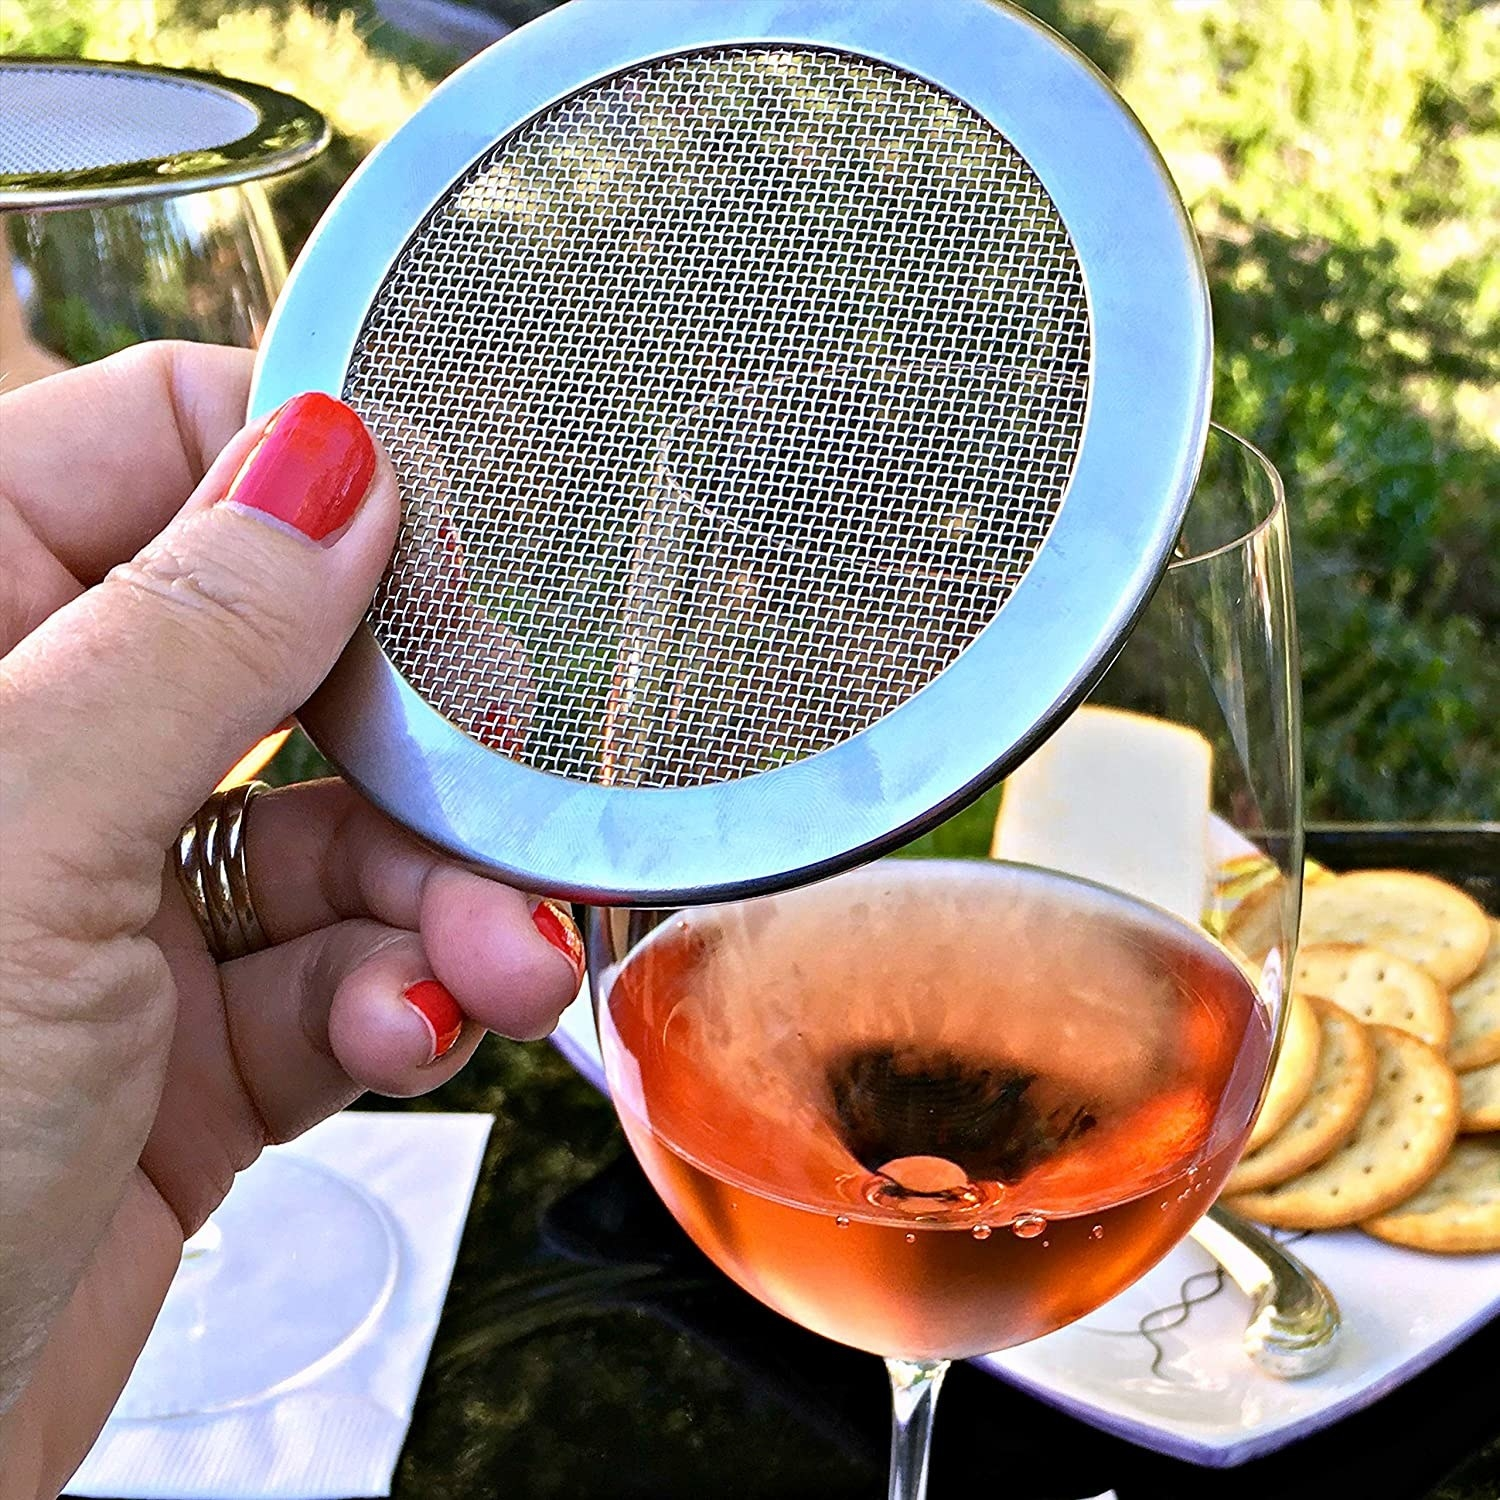 A person holding the mesh filer above their wine glass